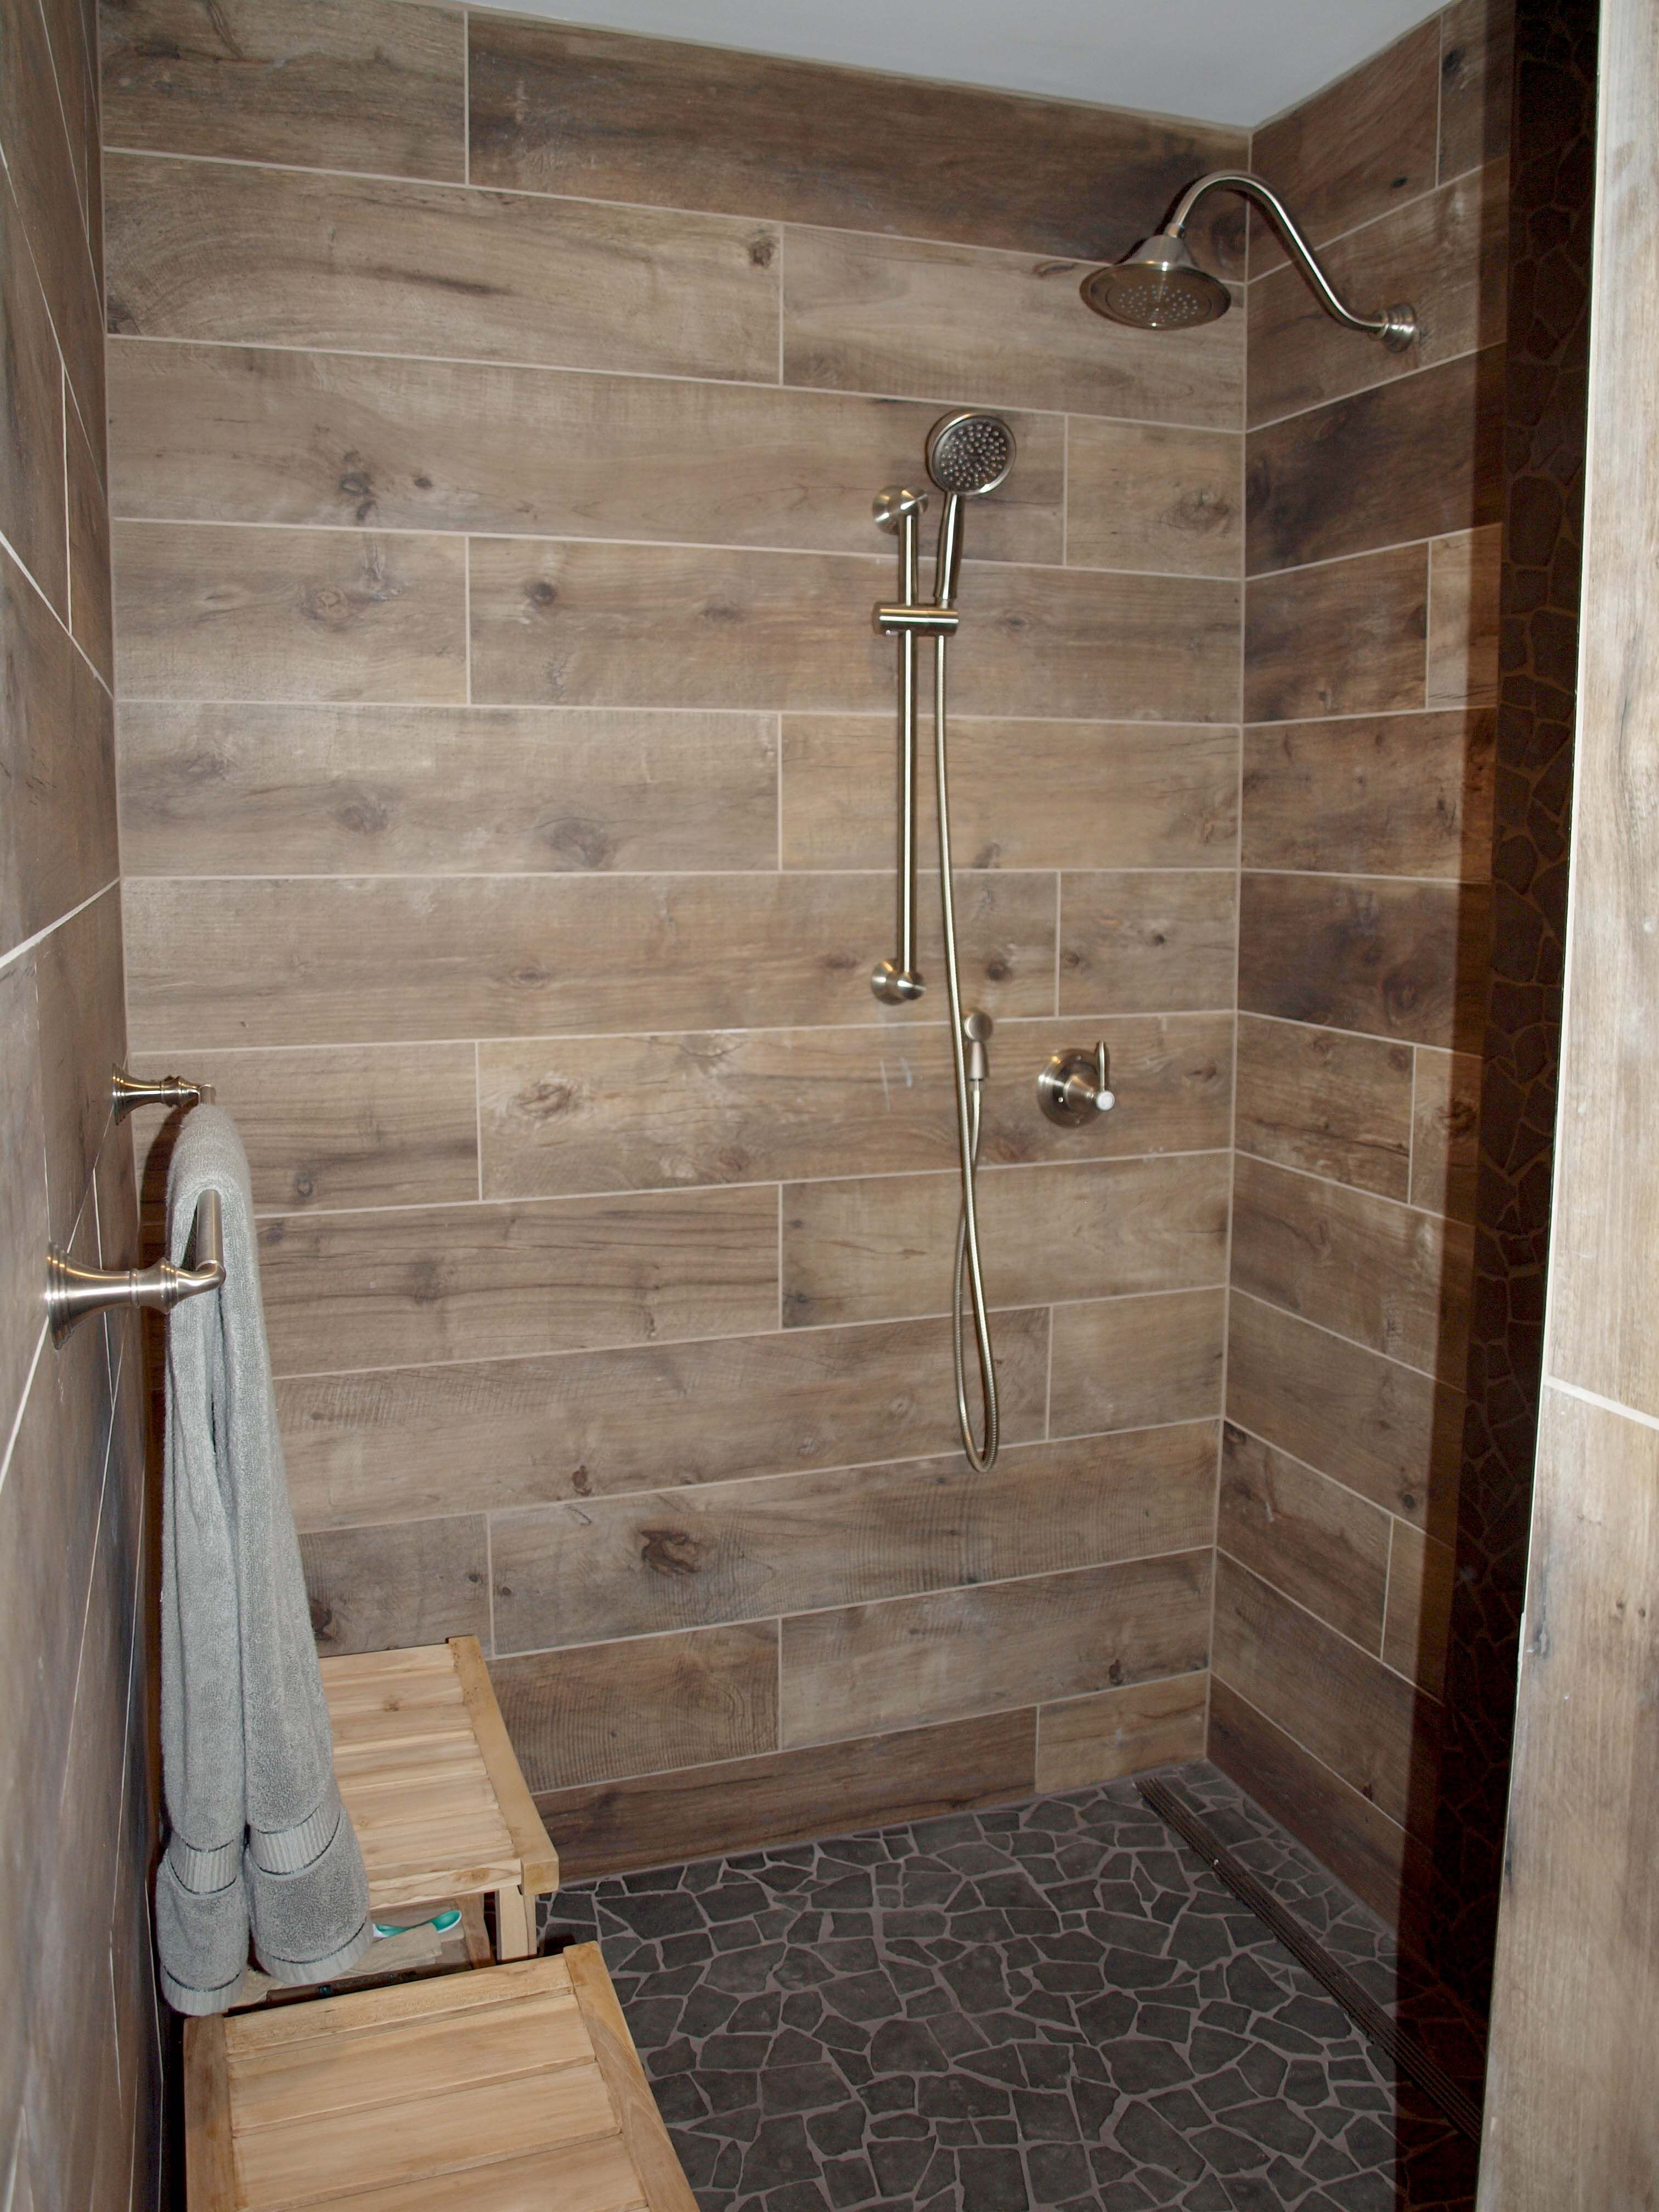 Wood Look Tile On Walls Bathroom Shower Design Wood Tile Shower